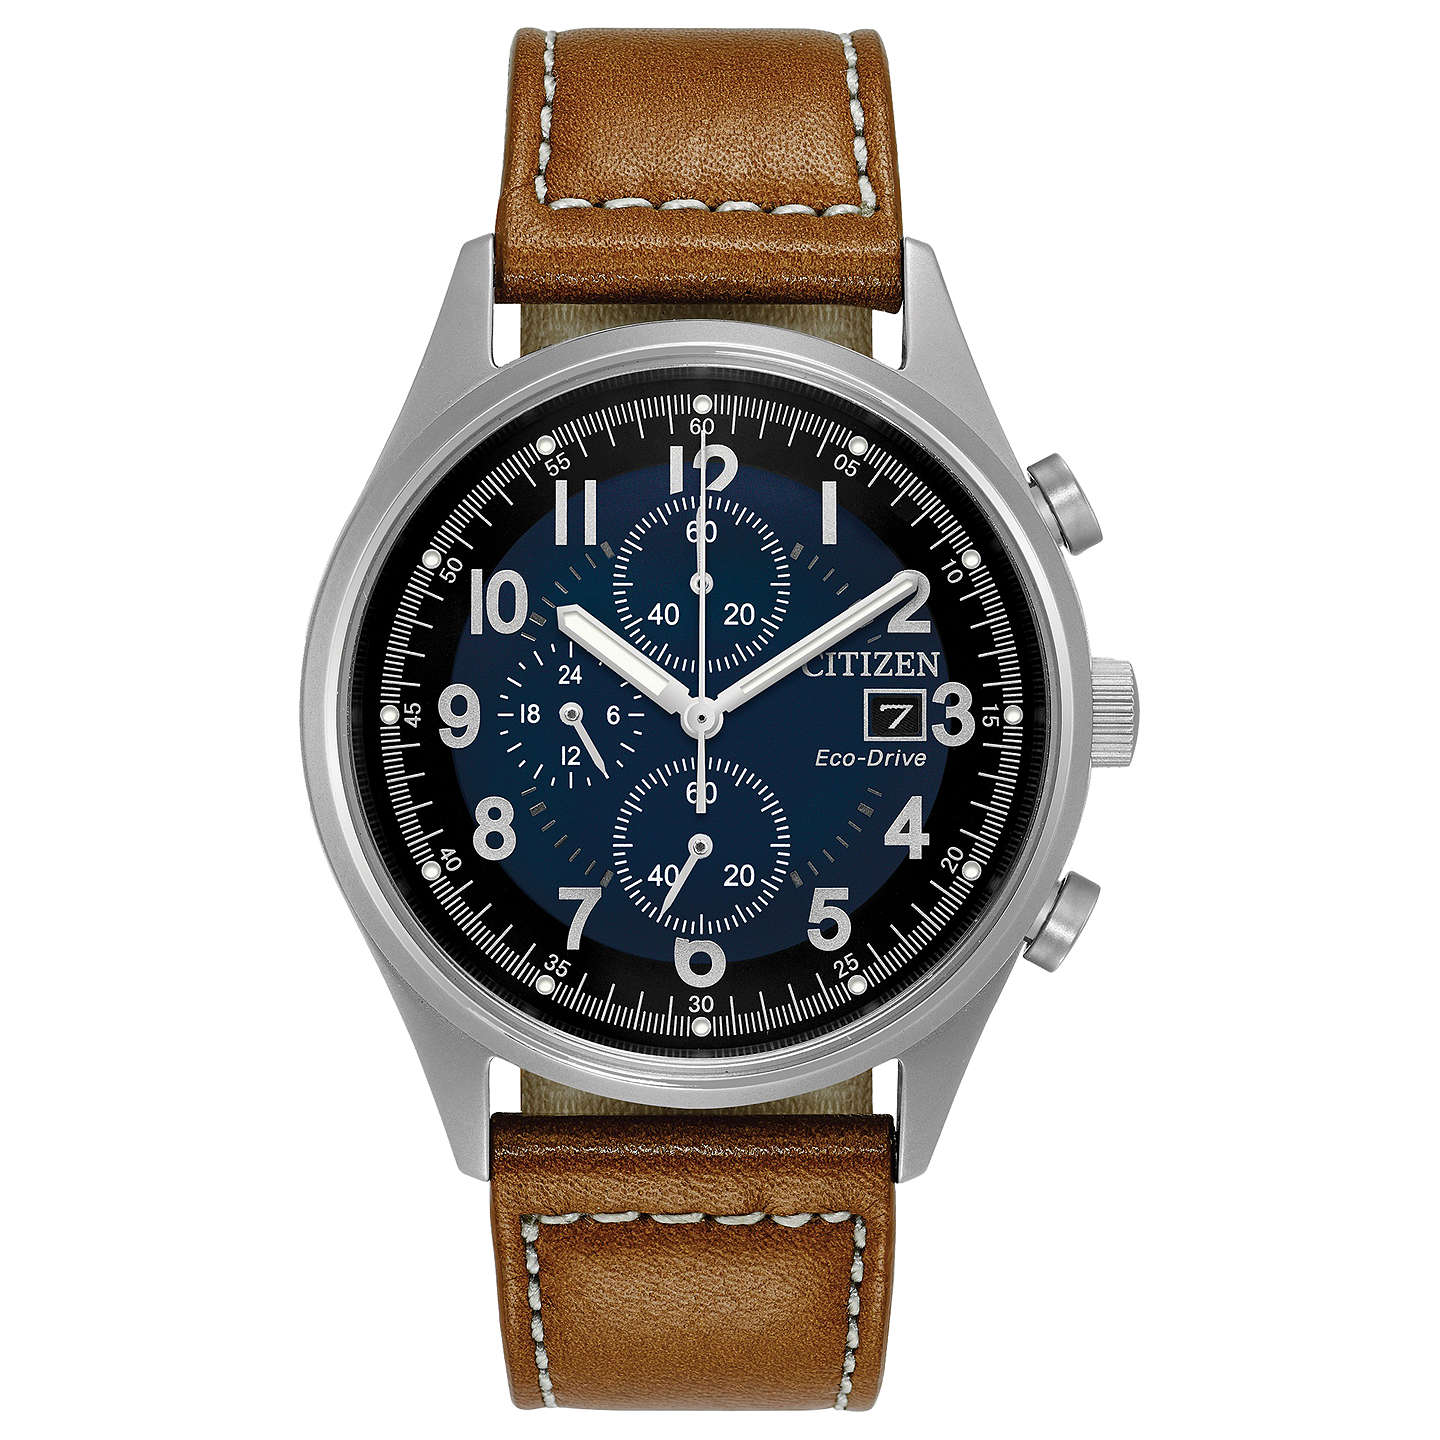 BuyCitizen CA0621-05L Men's Chronograph Date Leather Strap Watch, Tan/Midnight Online at johnlewis.com